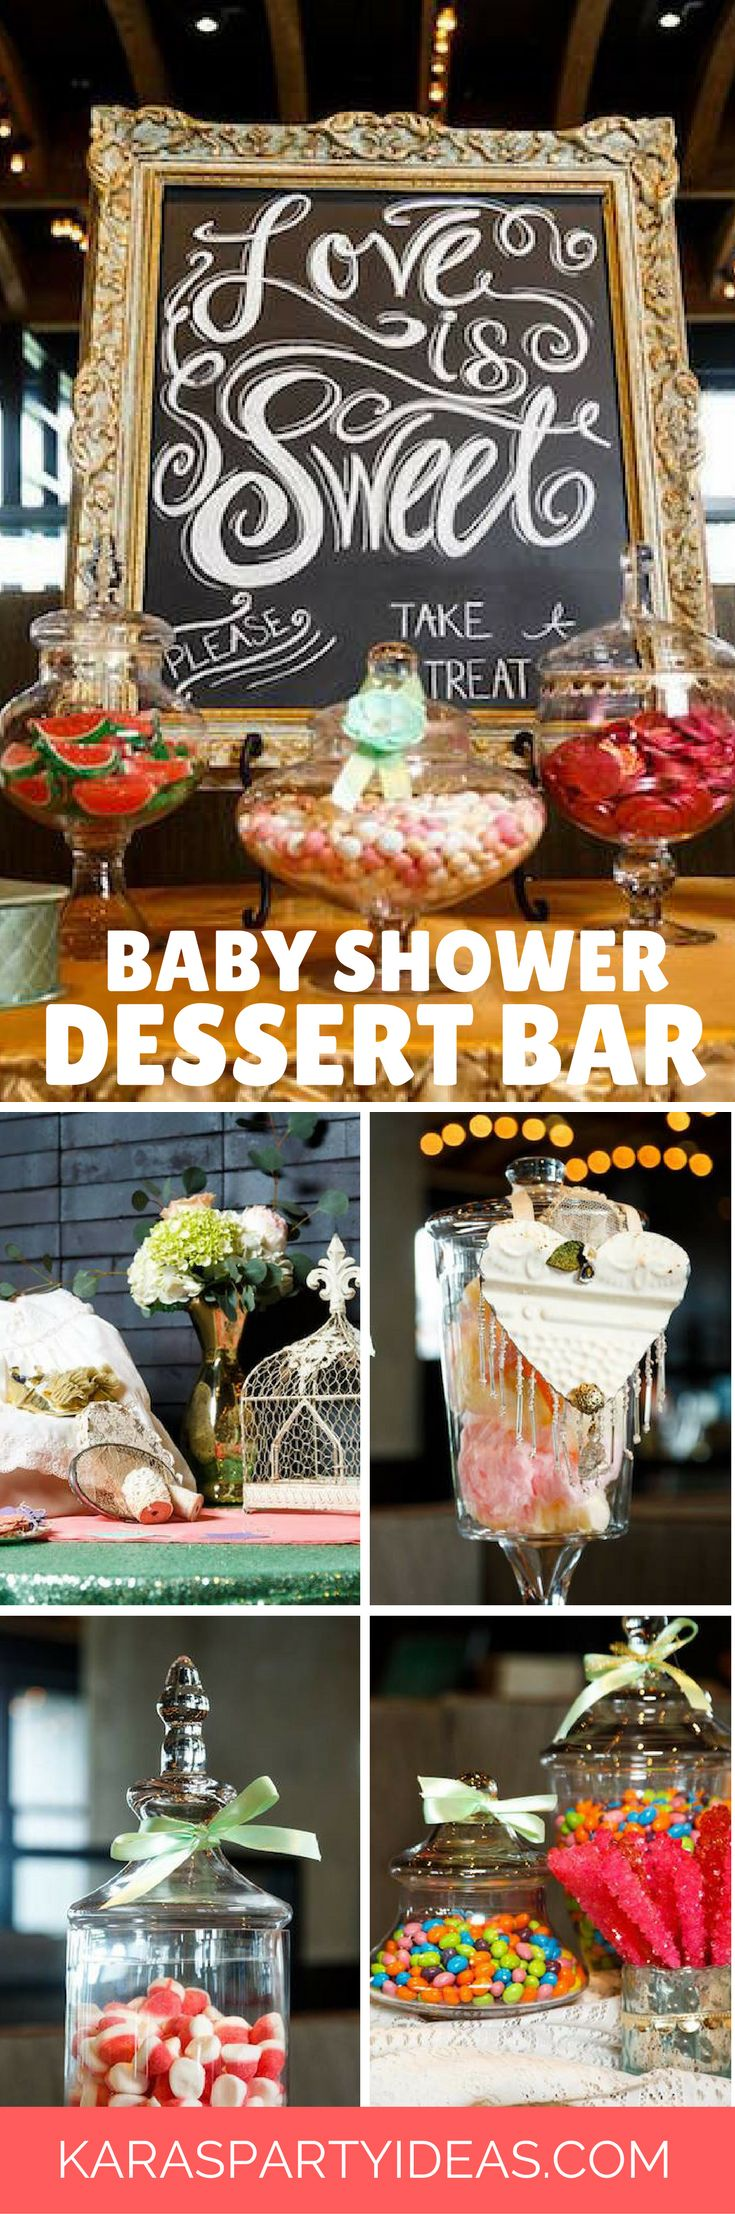 From kara s party ideas rustic dessert table display designed by - Love Is Sweet Baby Shower Dessert Bar Via Kara S Party Ideas Karaspartyideas Com